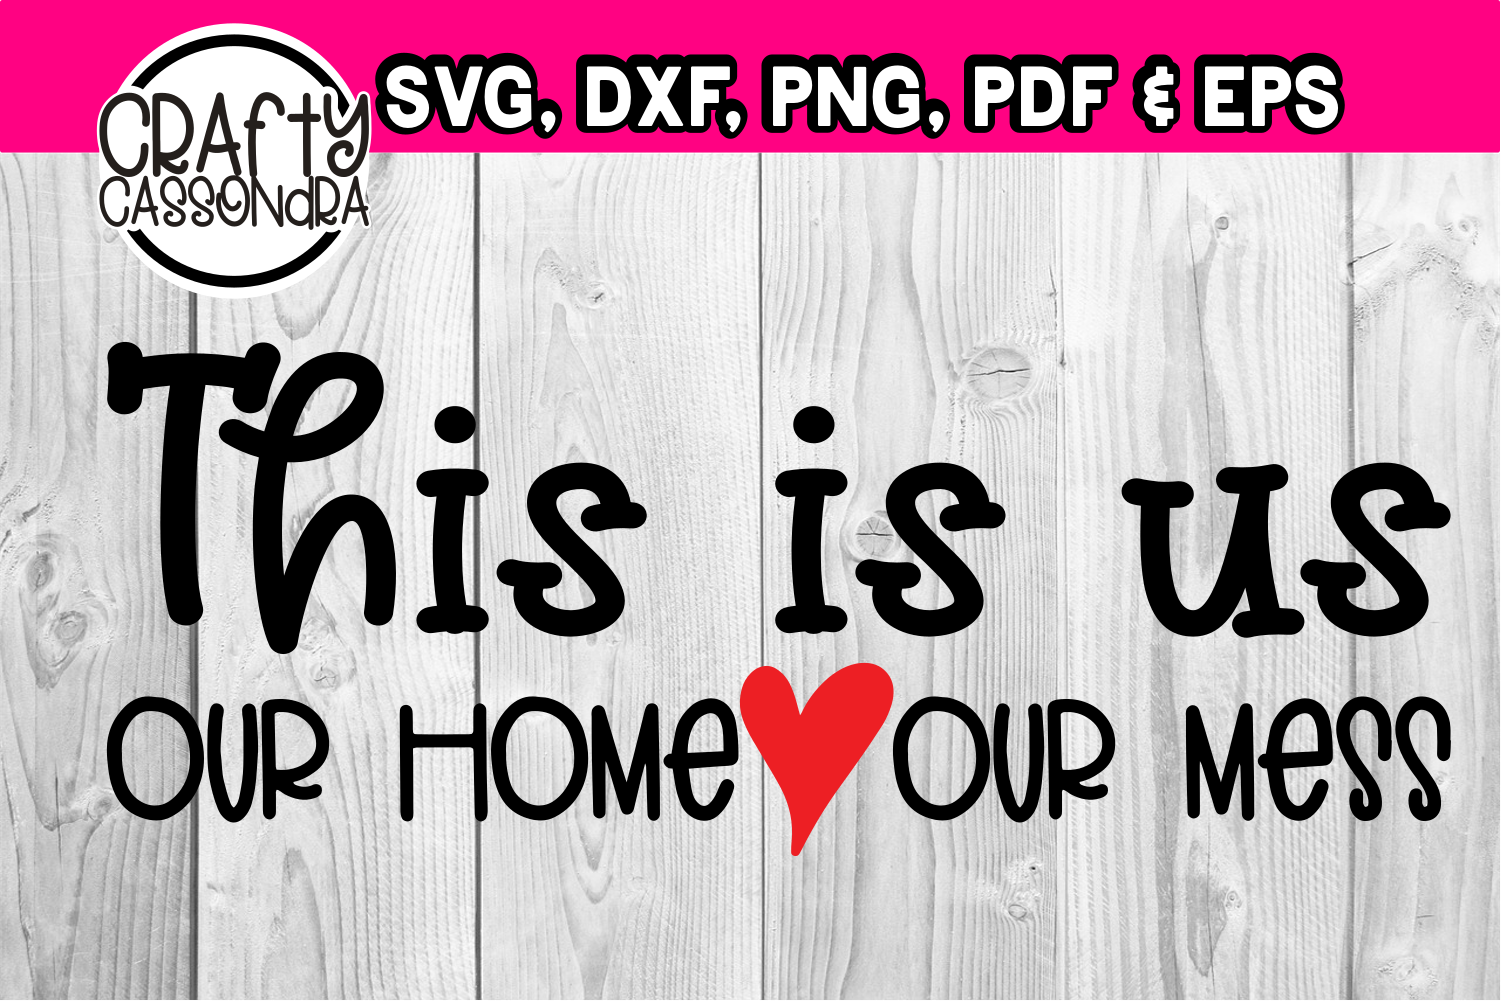 This is us. Our home. Our mess example image 2